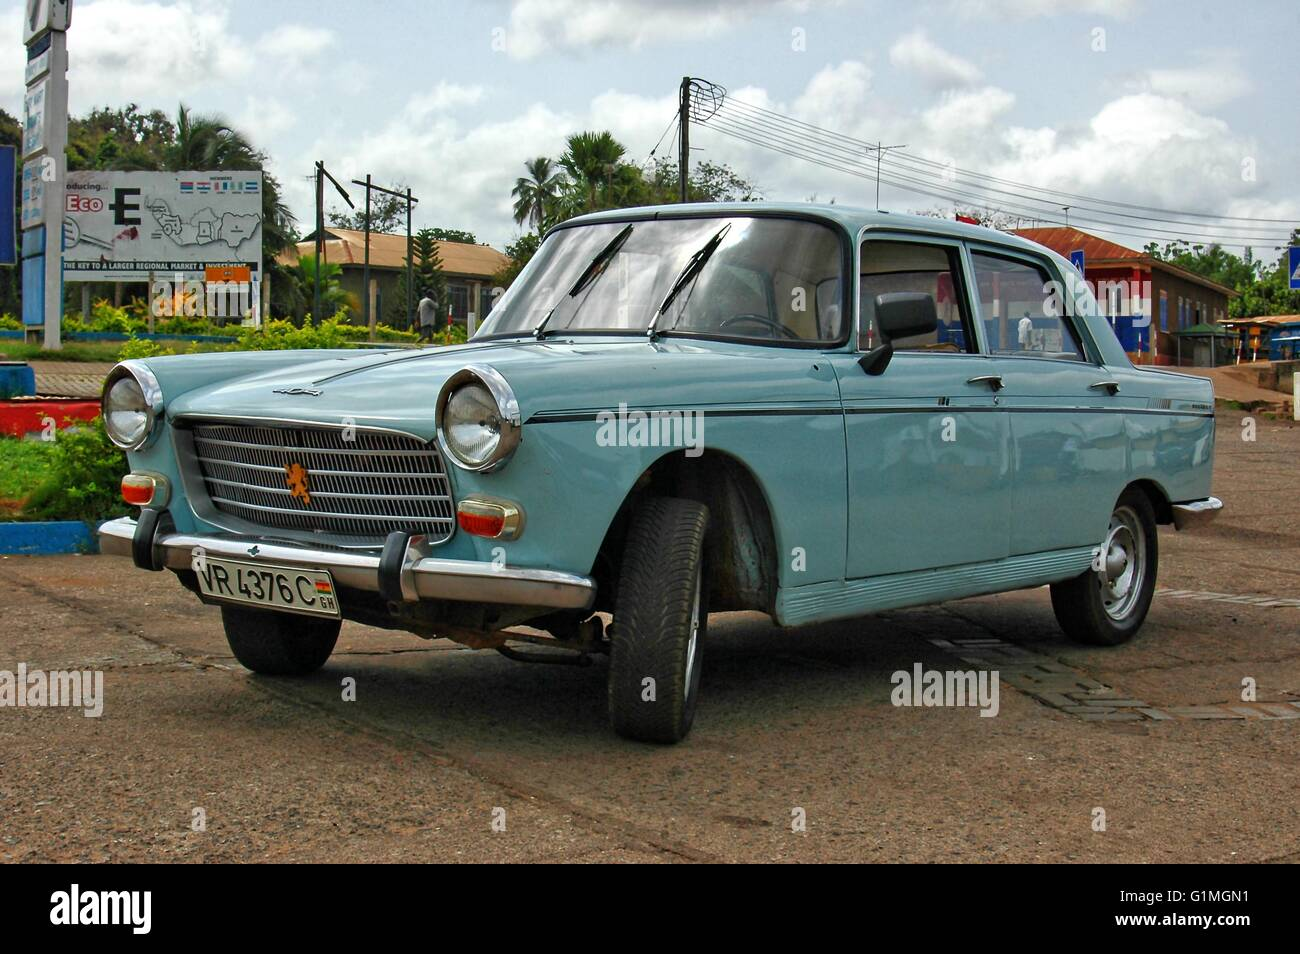 Old Car 1960 S Build But Great Maintained French Peugeot Car In Its Stock Photo Alamy